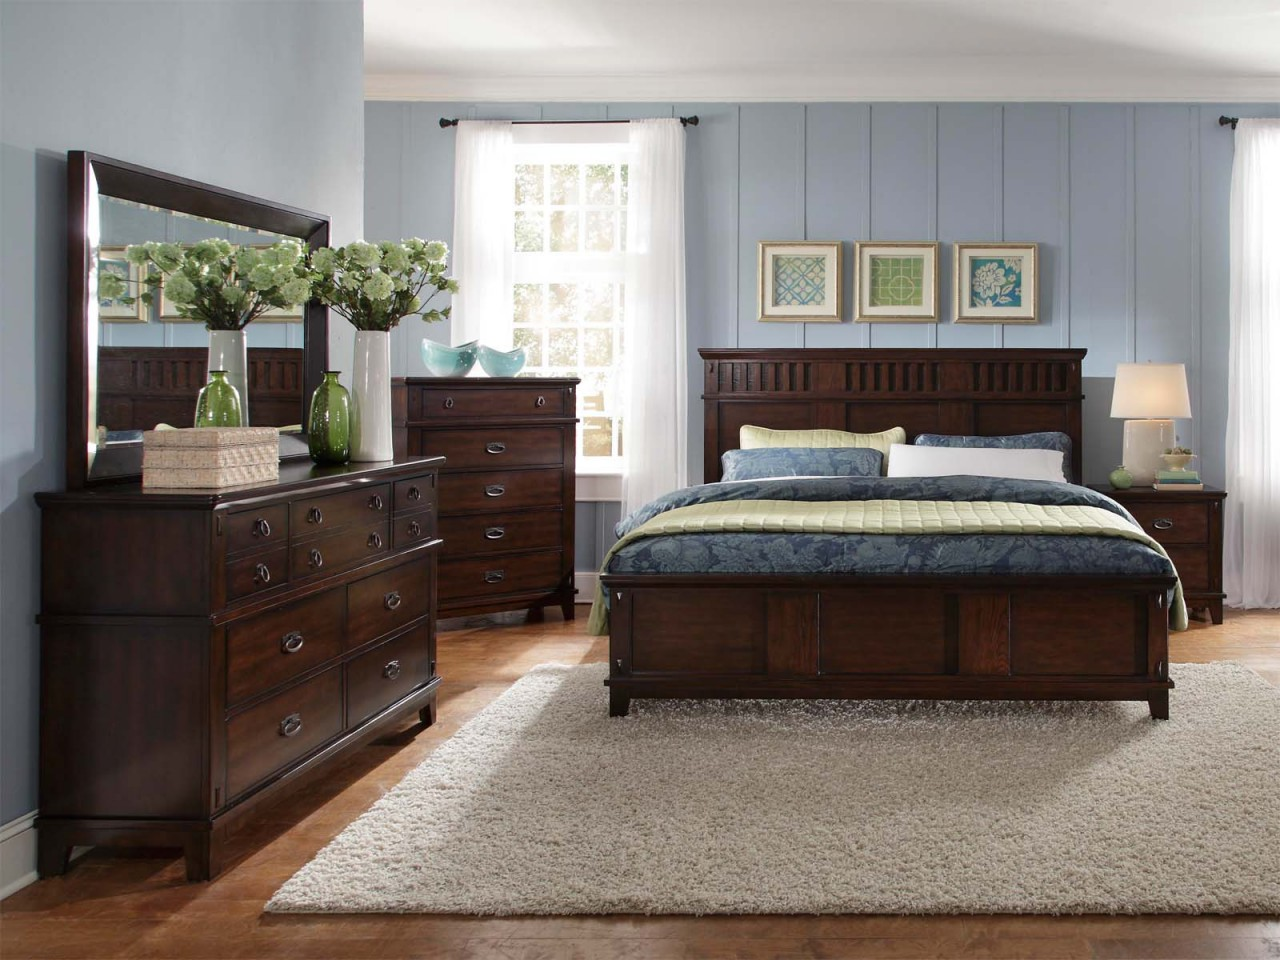 brown bedroom furniture decorating ideas photo - 8